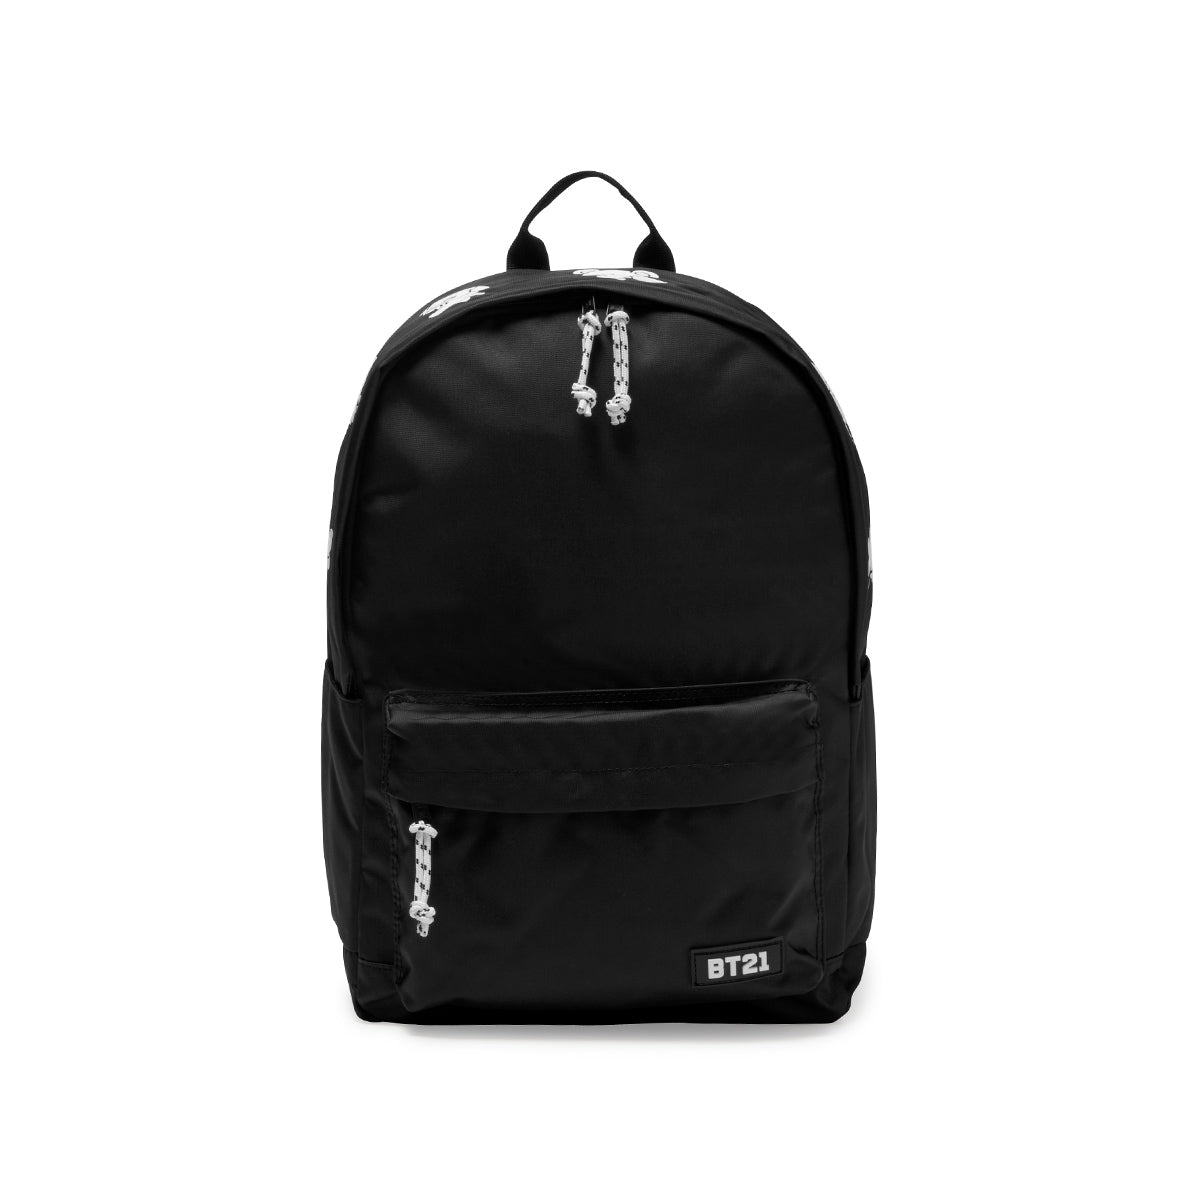 BT21 2 Way Backpack